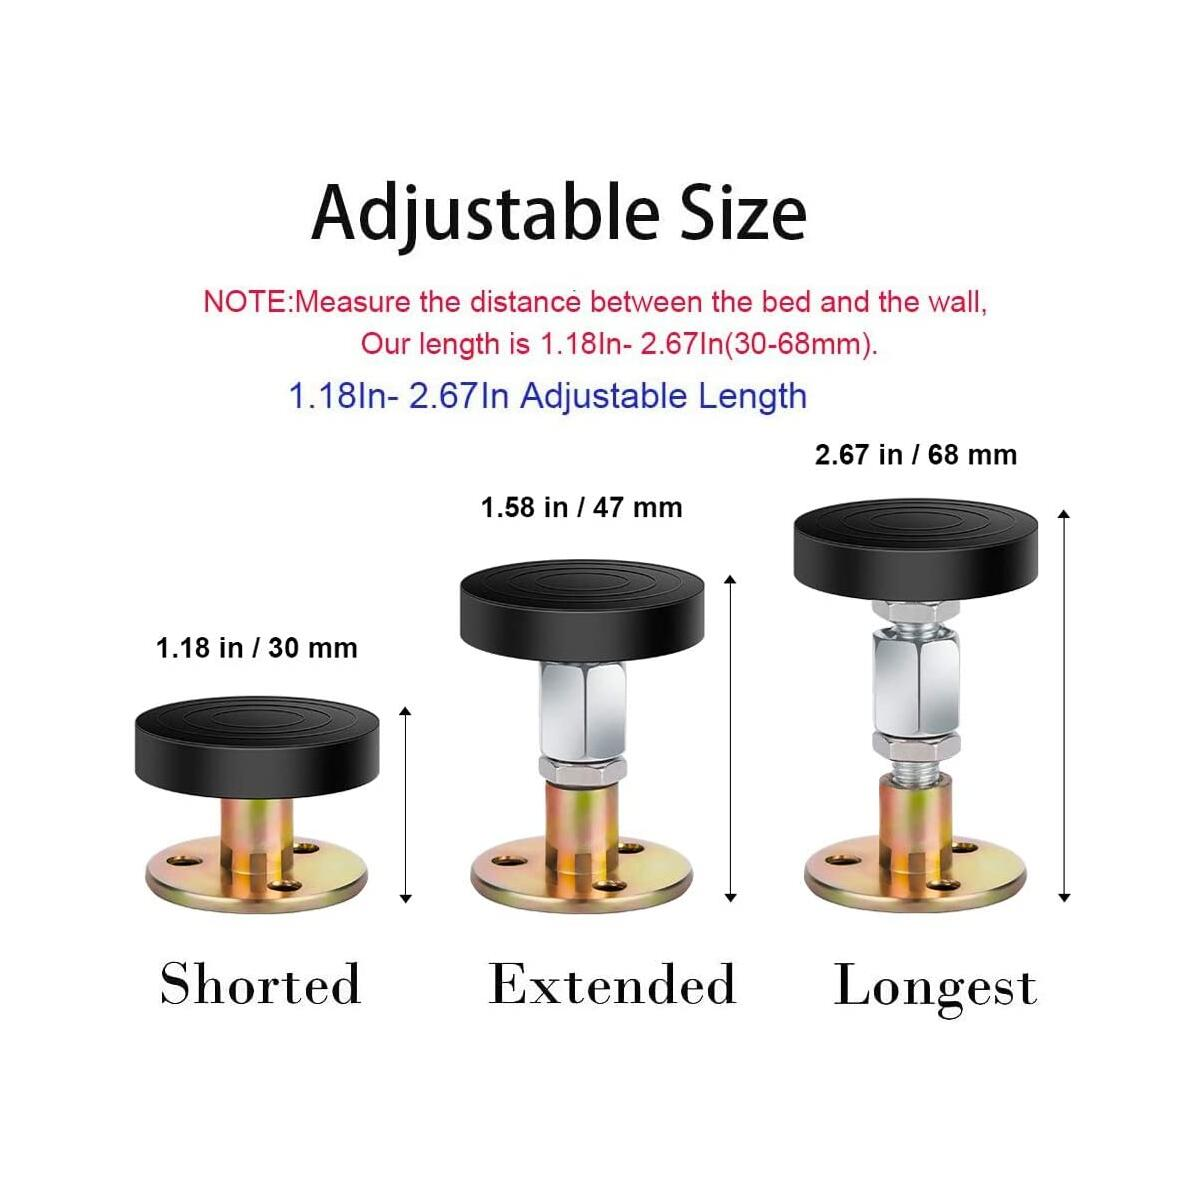 4 PCS Bed Frame Anti-Shake Tool, No More Wobble, 1.1In- 2.6In Adjustable Headboard Stabilizer, Headboard Stoppers for Beds Cabinets Sofas, Easy Install